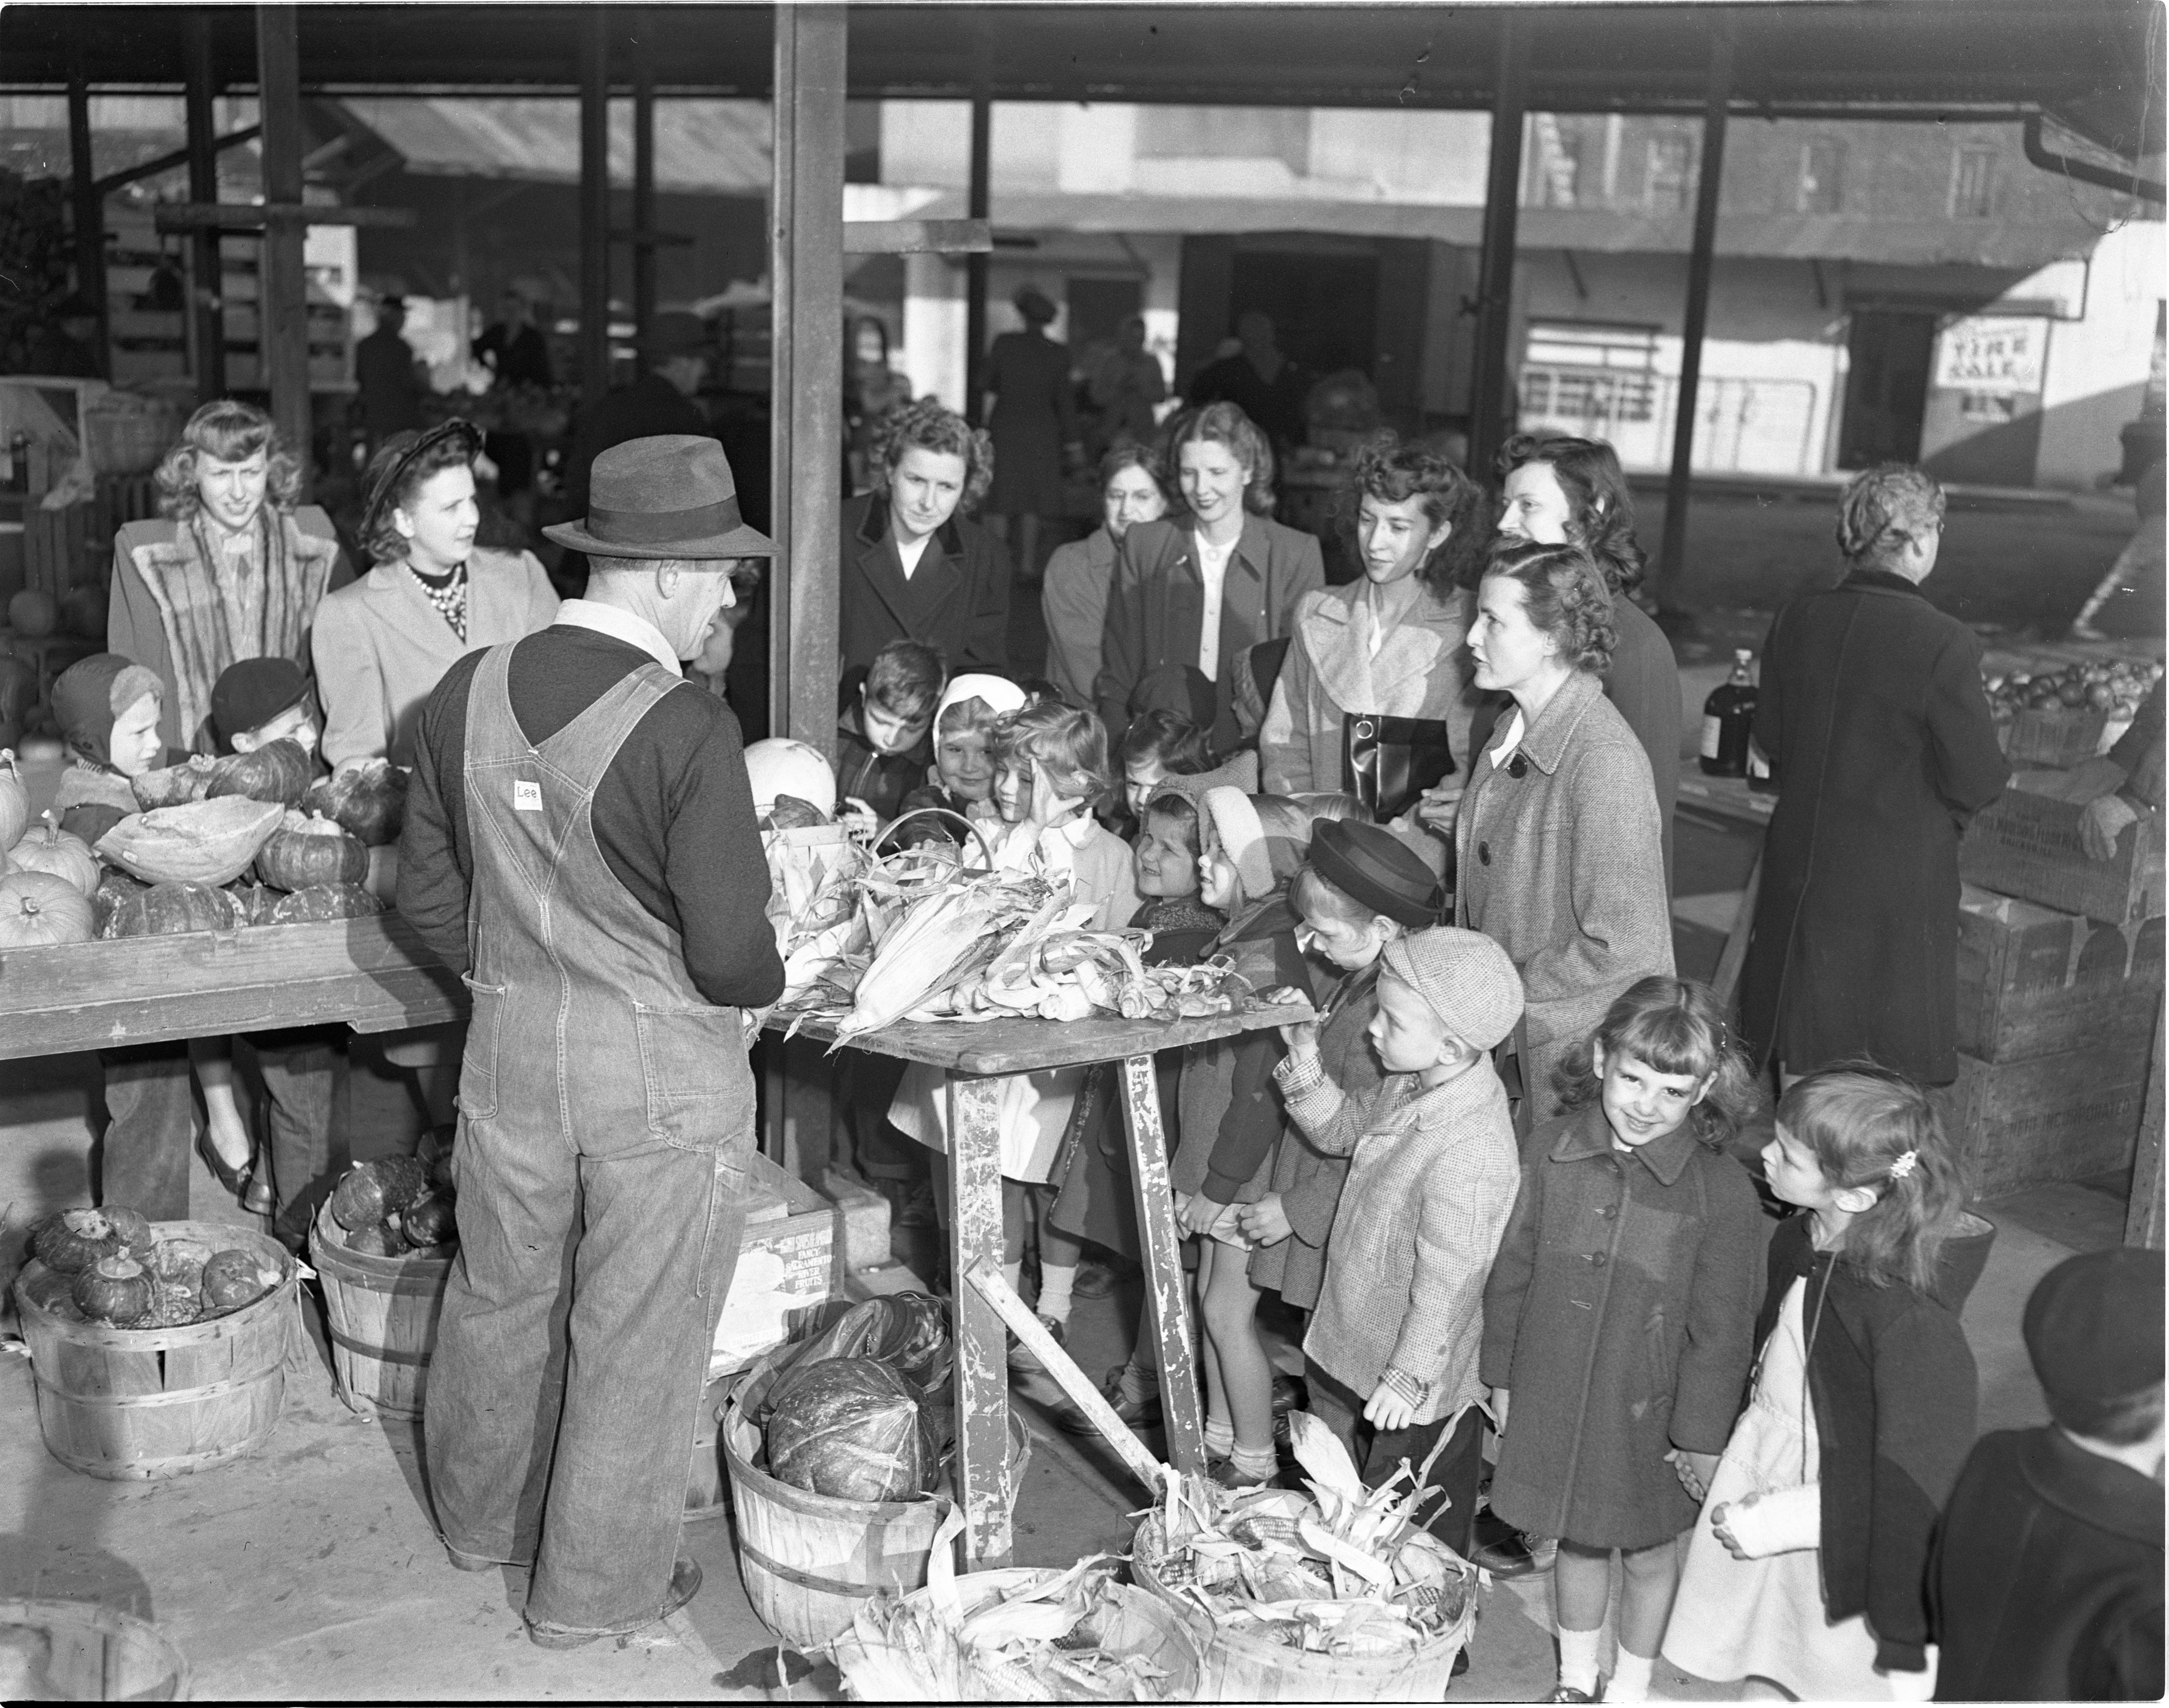 Perry School First Graders Shop At Farmers Market, October 1948 image